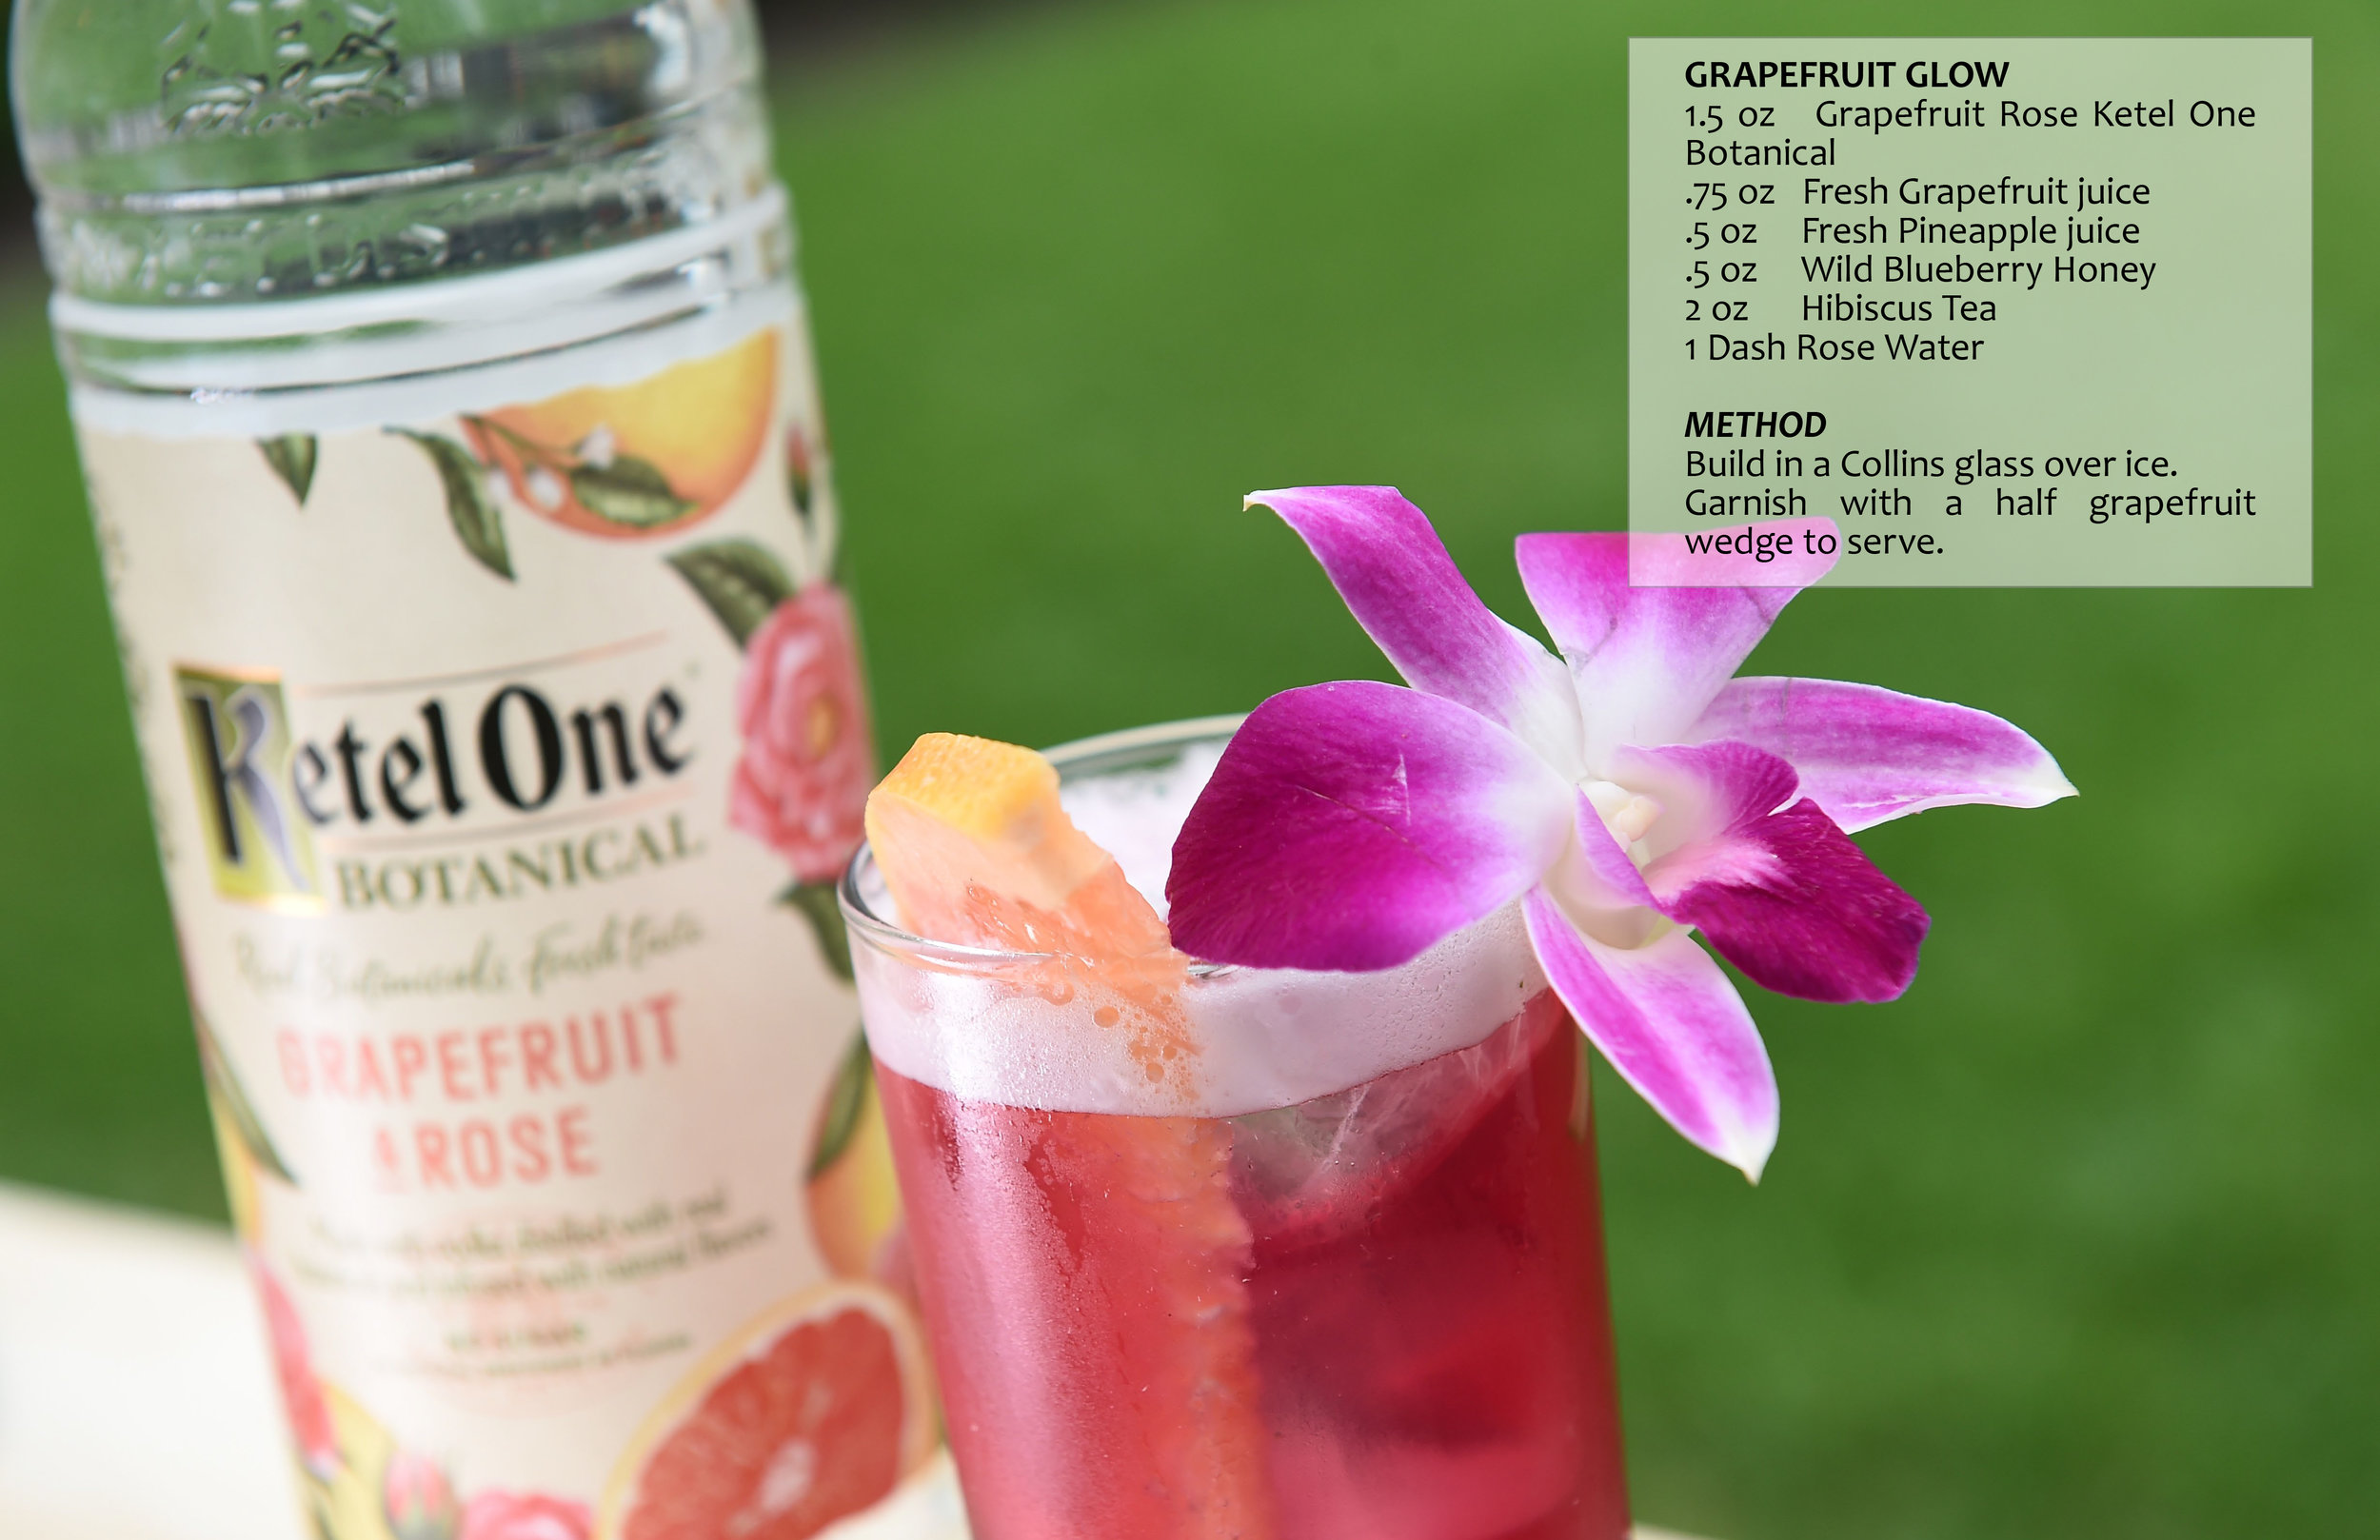 AM MAY THE ART OF THE SNACK KETEL ONE BOTANICAL-4.jpg